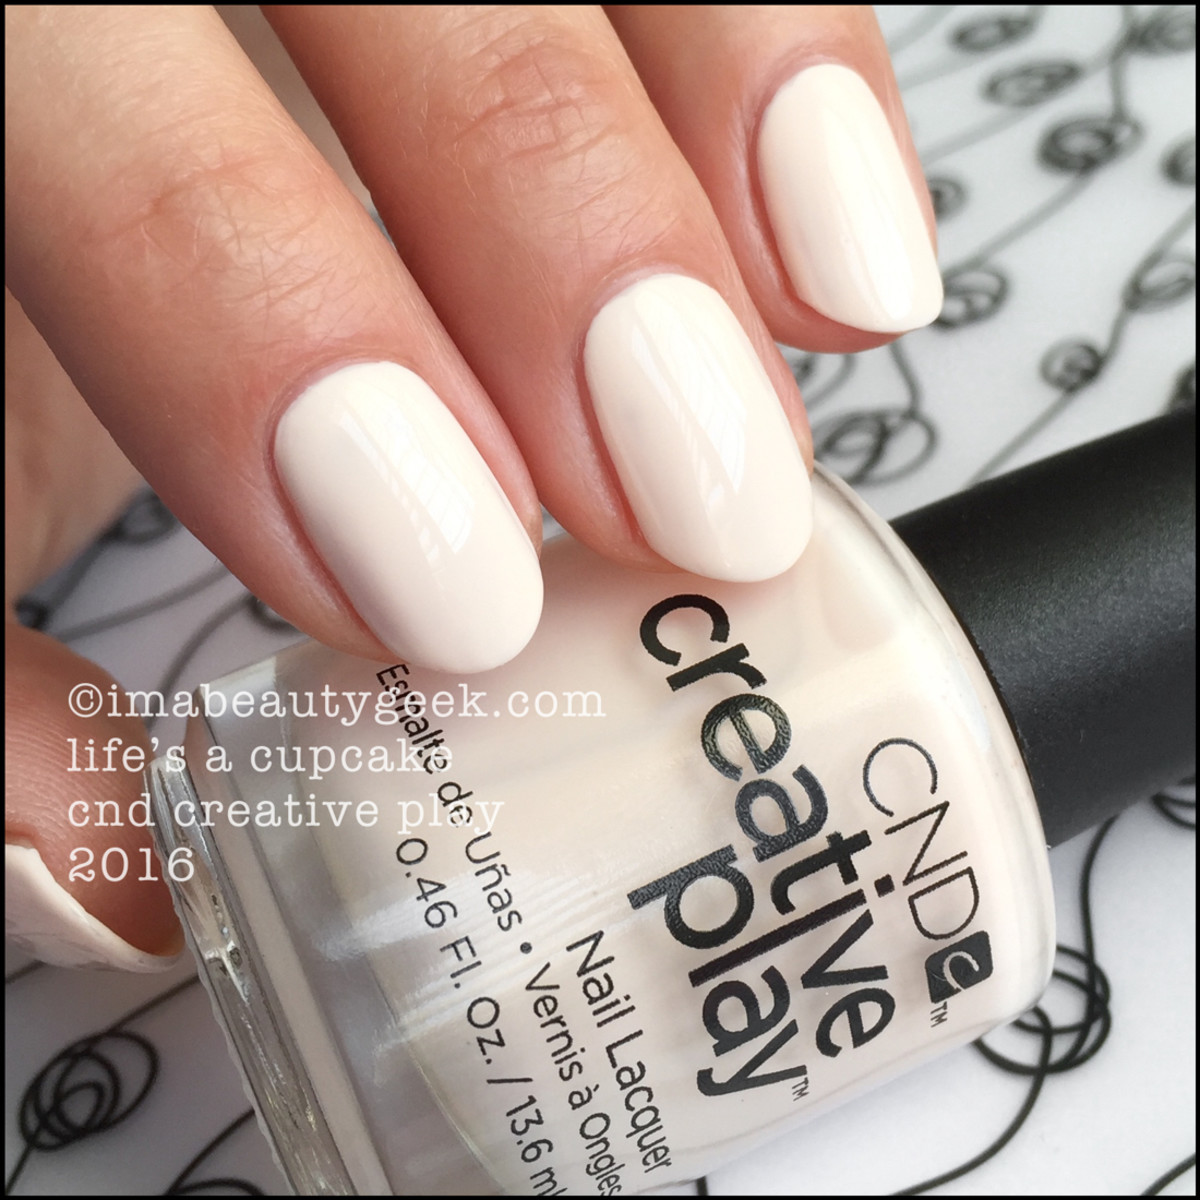 CND Creative Play Lifes a Cupcake_CND Creative Play Nail Lacquer Swatches 2016